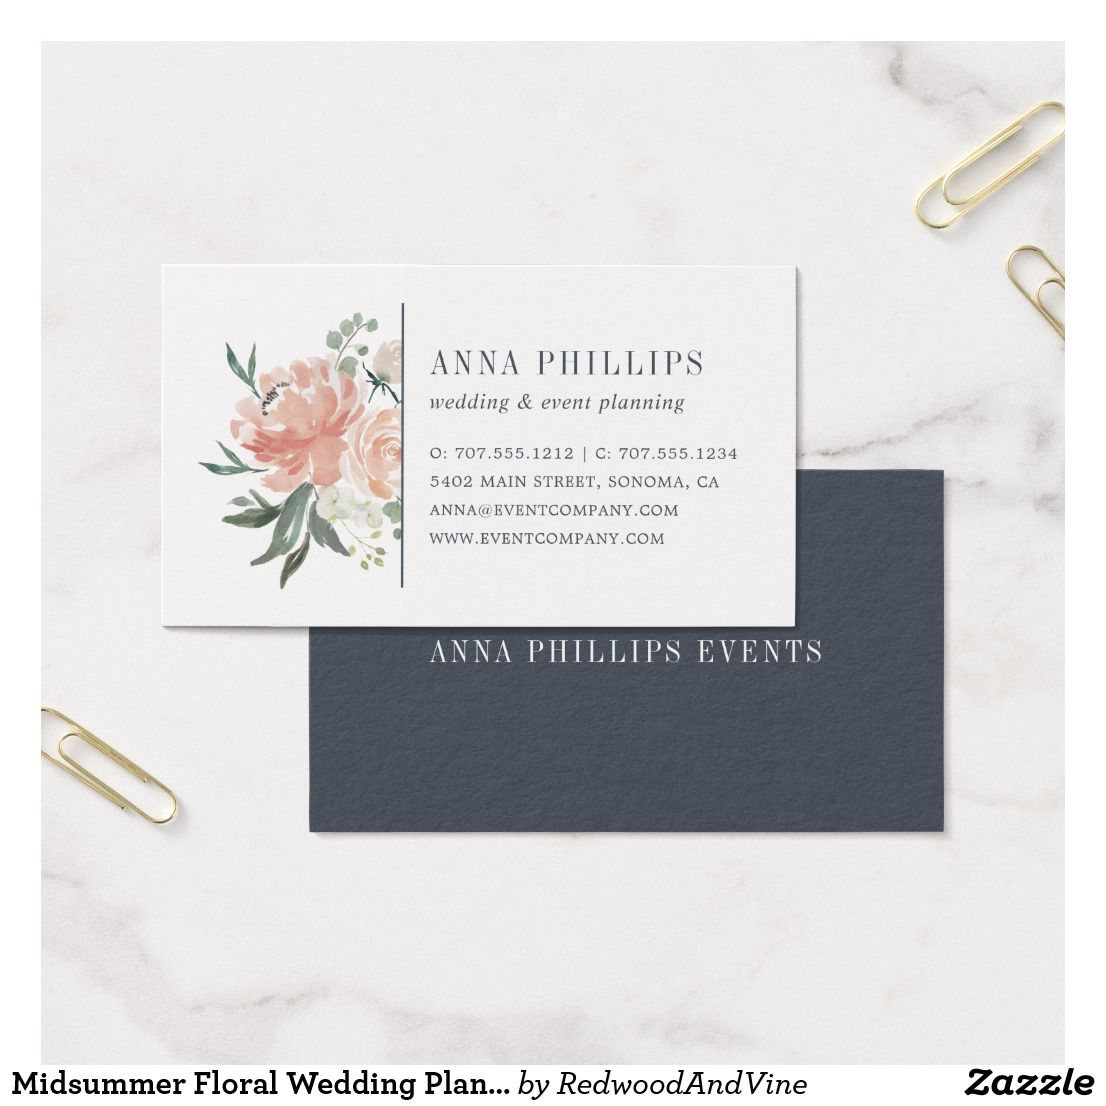 Midsummer Floral Wedding Planner Business Card | Pinterest | Floral ...